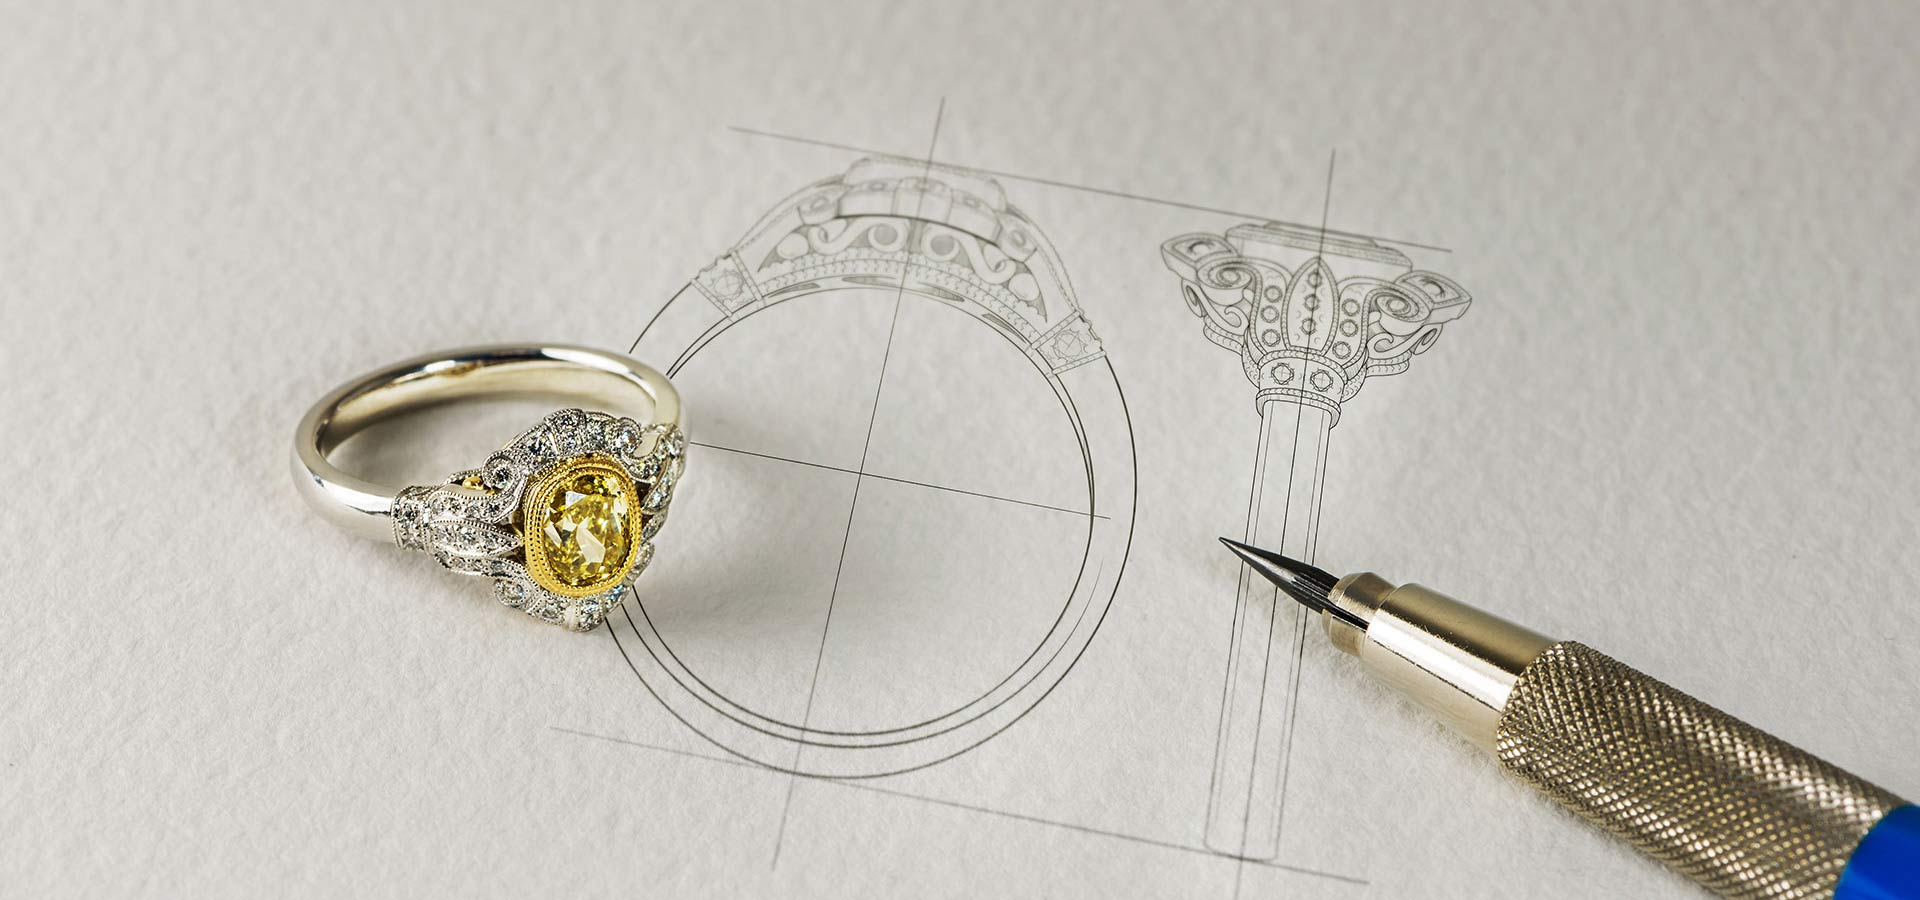 Ring Design Ideas wedding ring design ideas screenshot Design Your Own Ring Ring Design Ideas